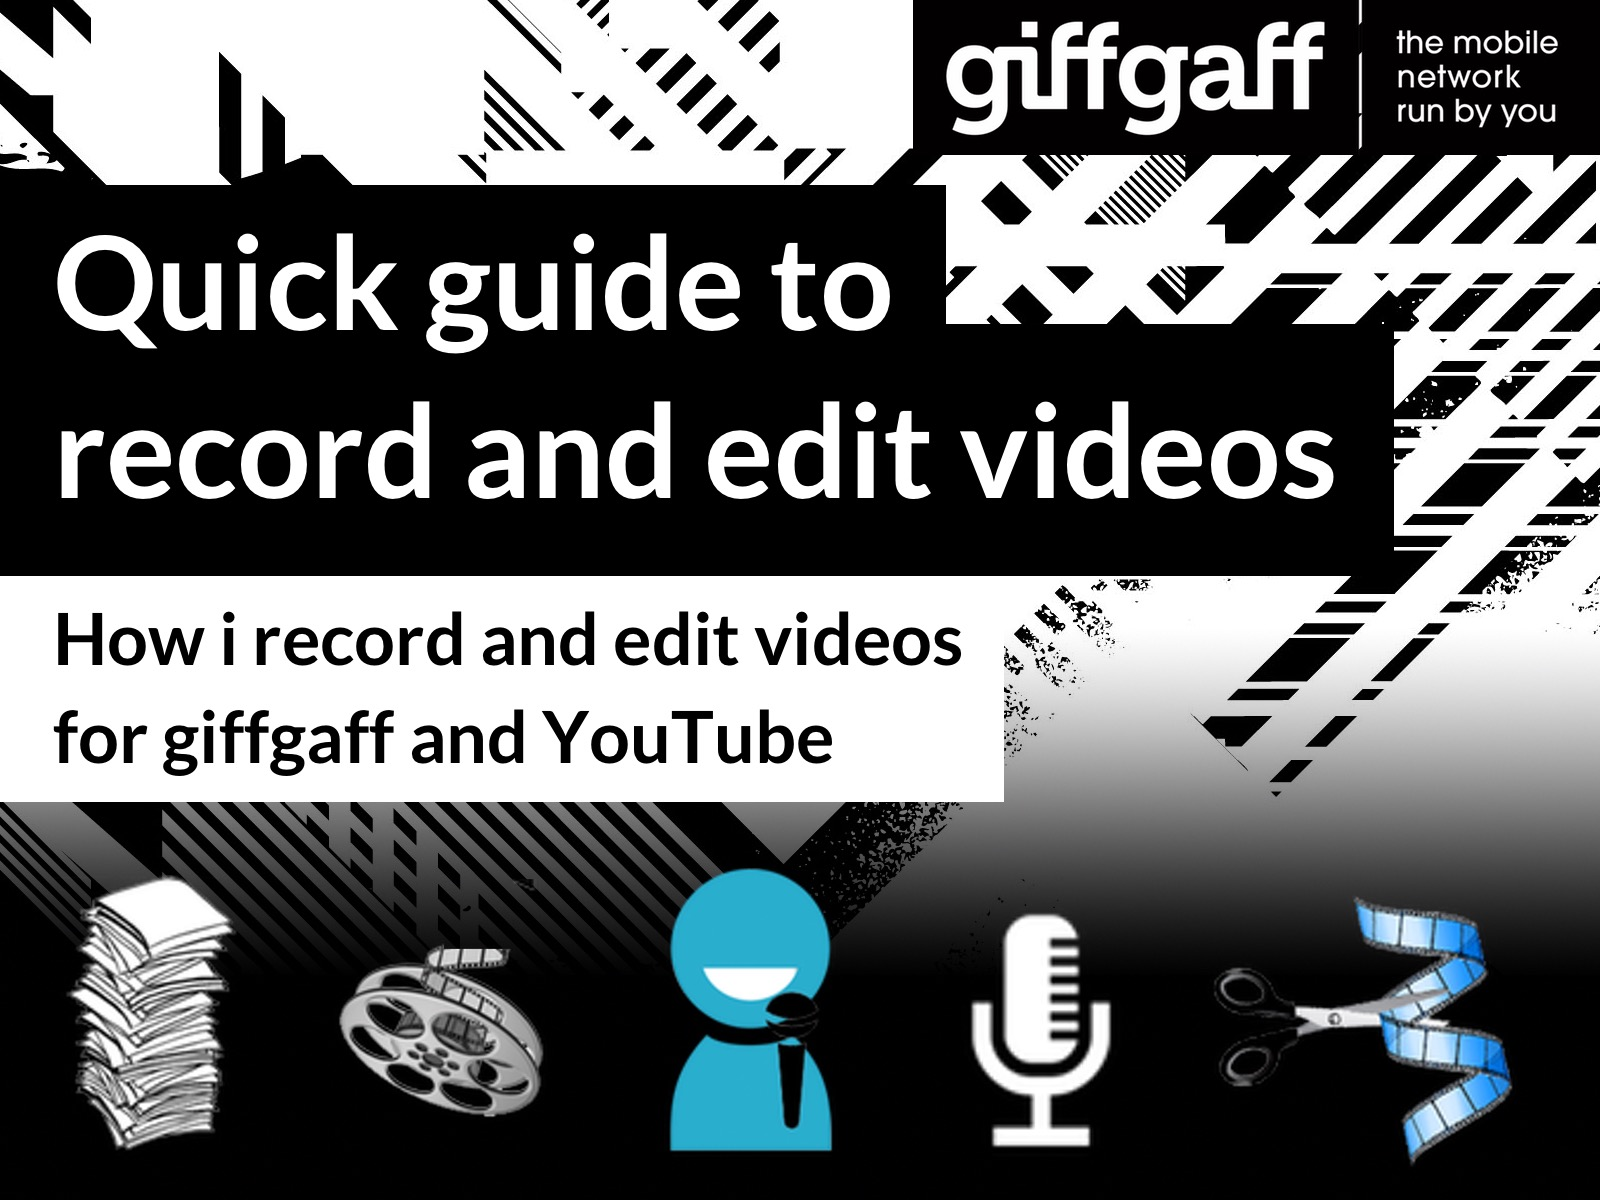 How i record and edit videos for giffgaff and YouTube